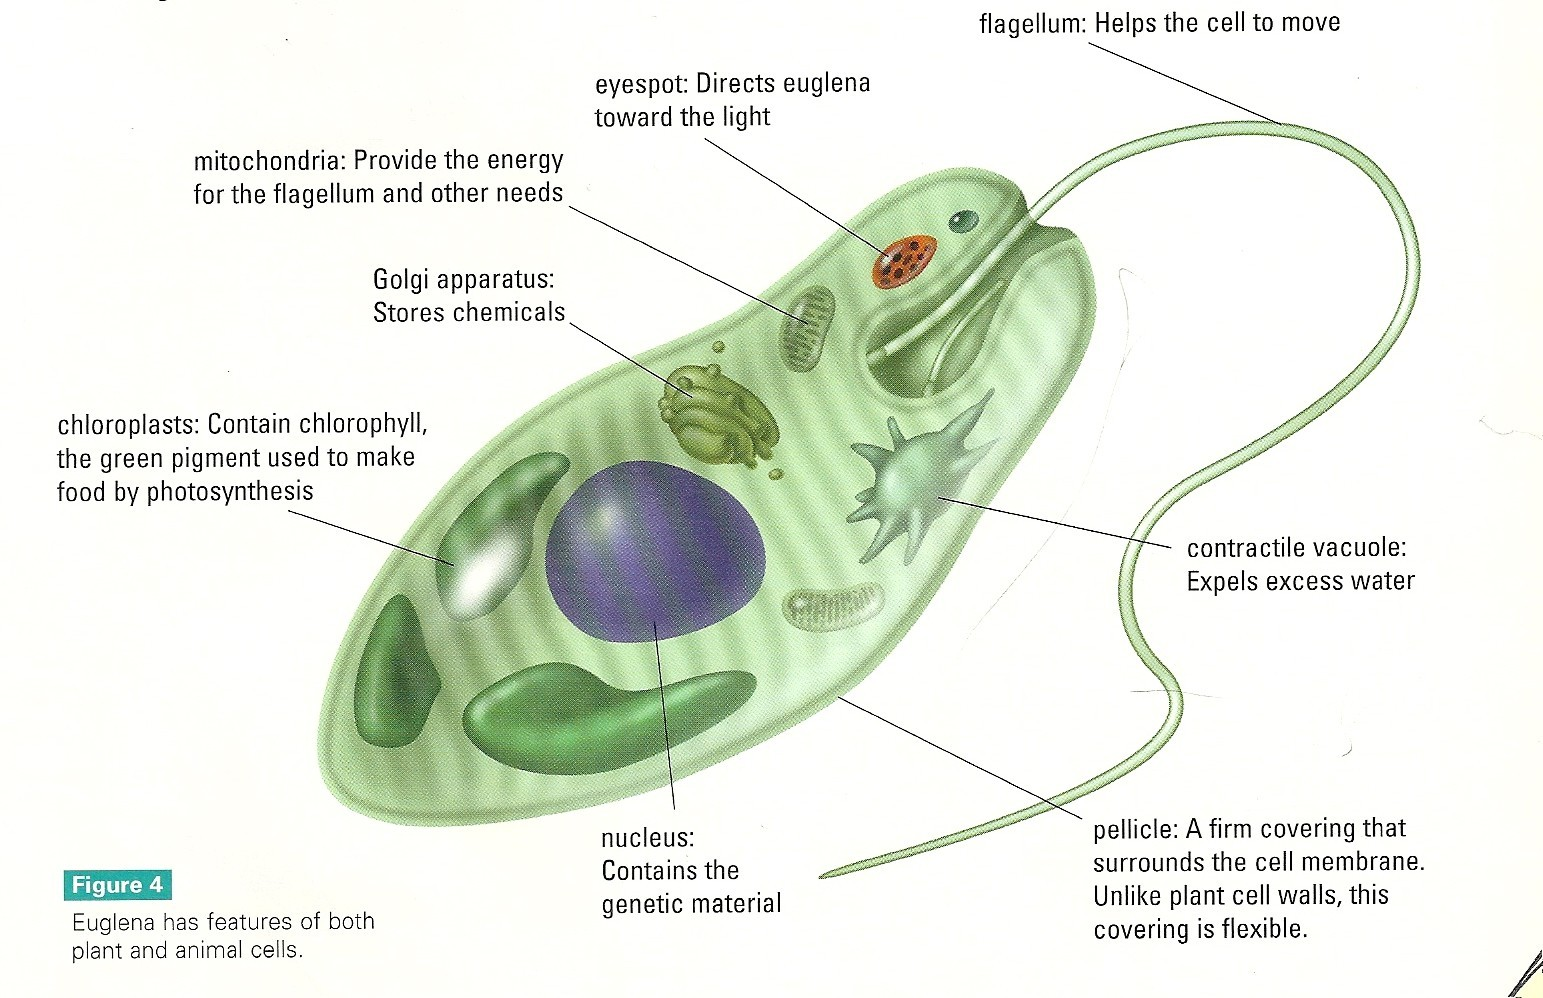 Euglena Cell Diagram With Labels Mtd Wiring Lawn Tractor Unit 3 Cells Tutorial Page Comelearnmore Comparison Of And Microscope Photograph Labeled